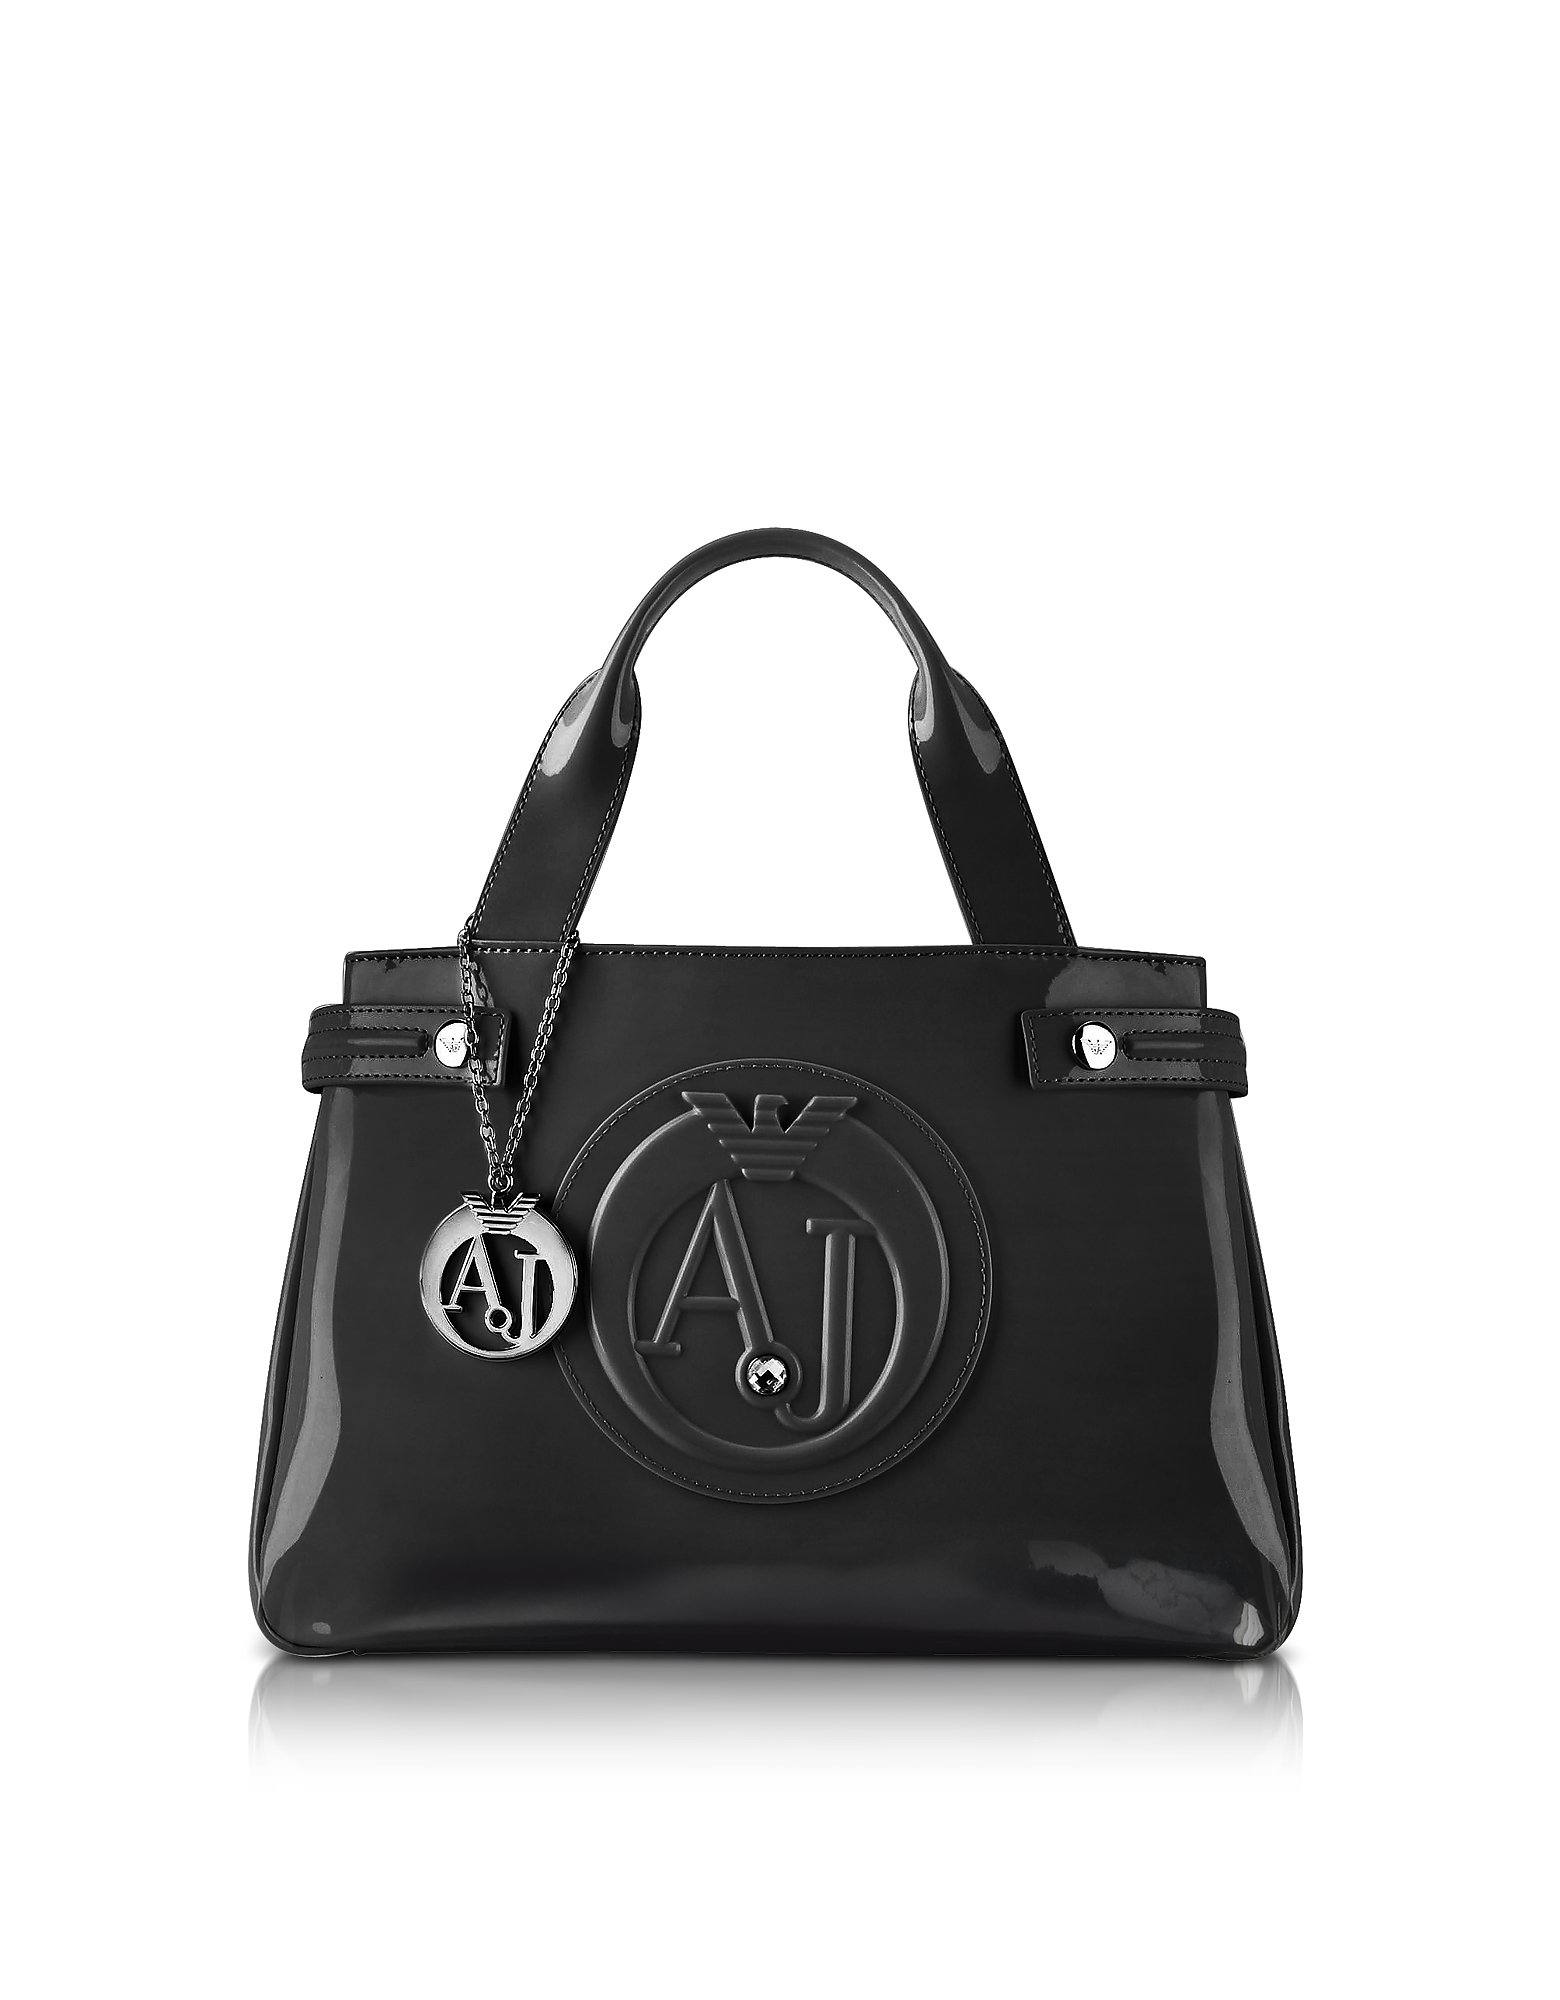 Armani Jeans Handbags, Medium Black Faux Patent Leather Tote